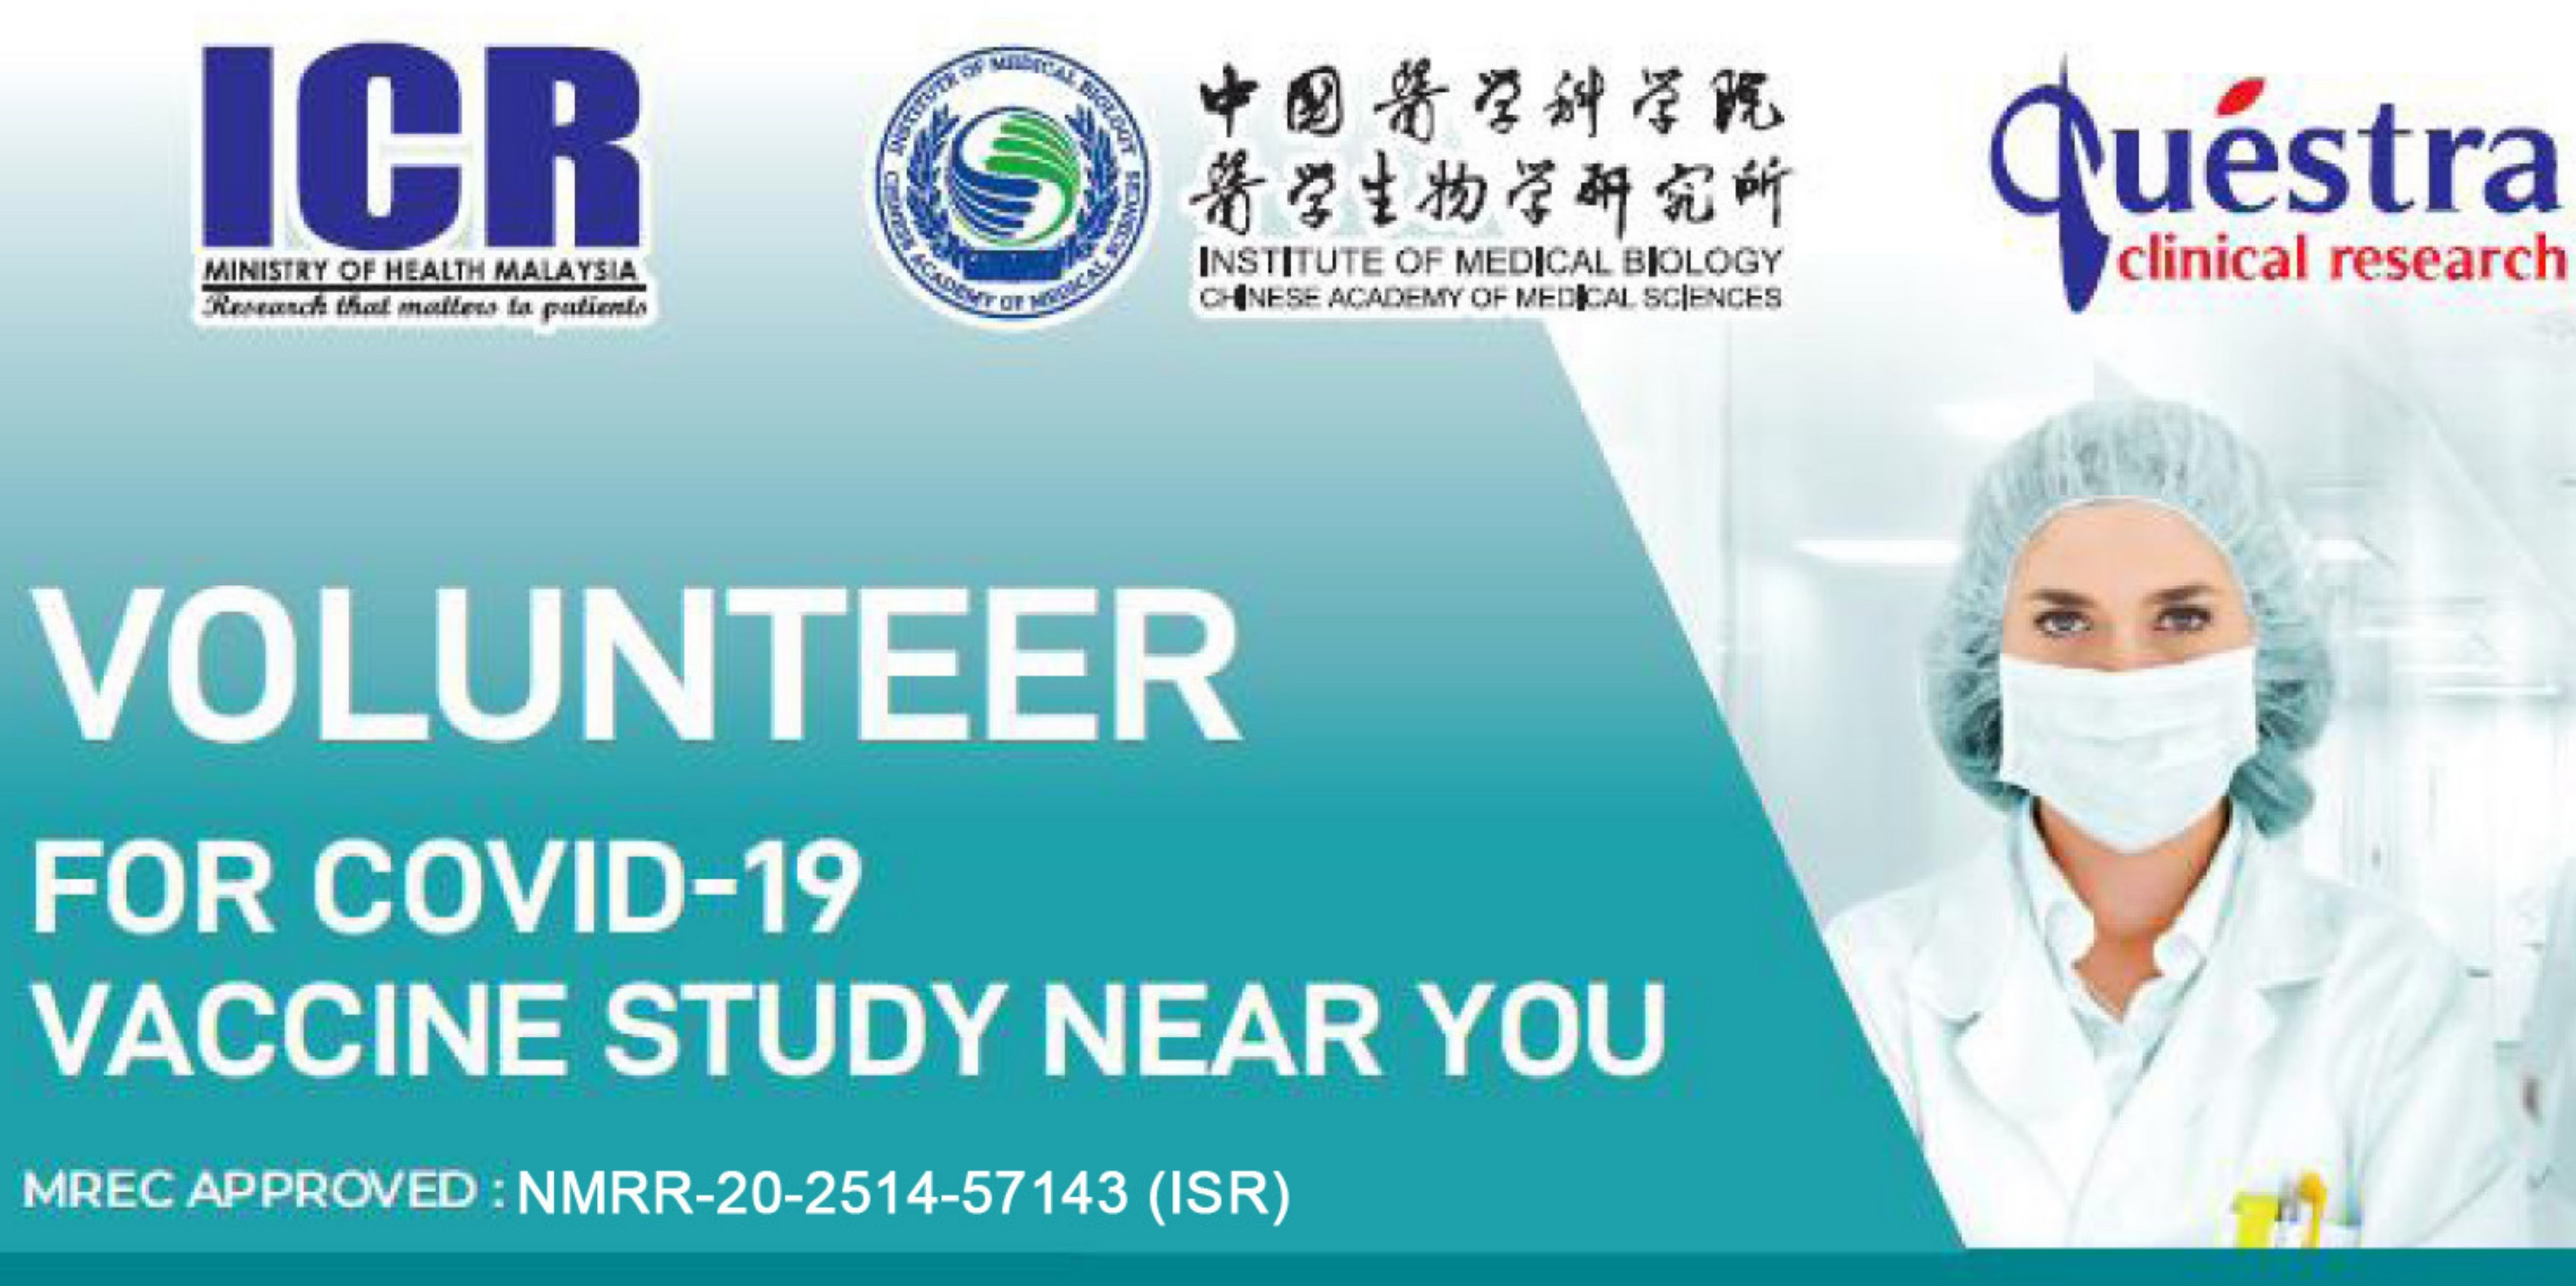 Volunteers for the COVID-19 vaccine study in Malaysia